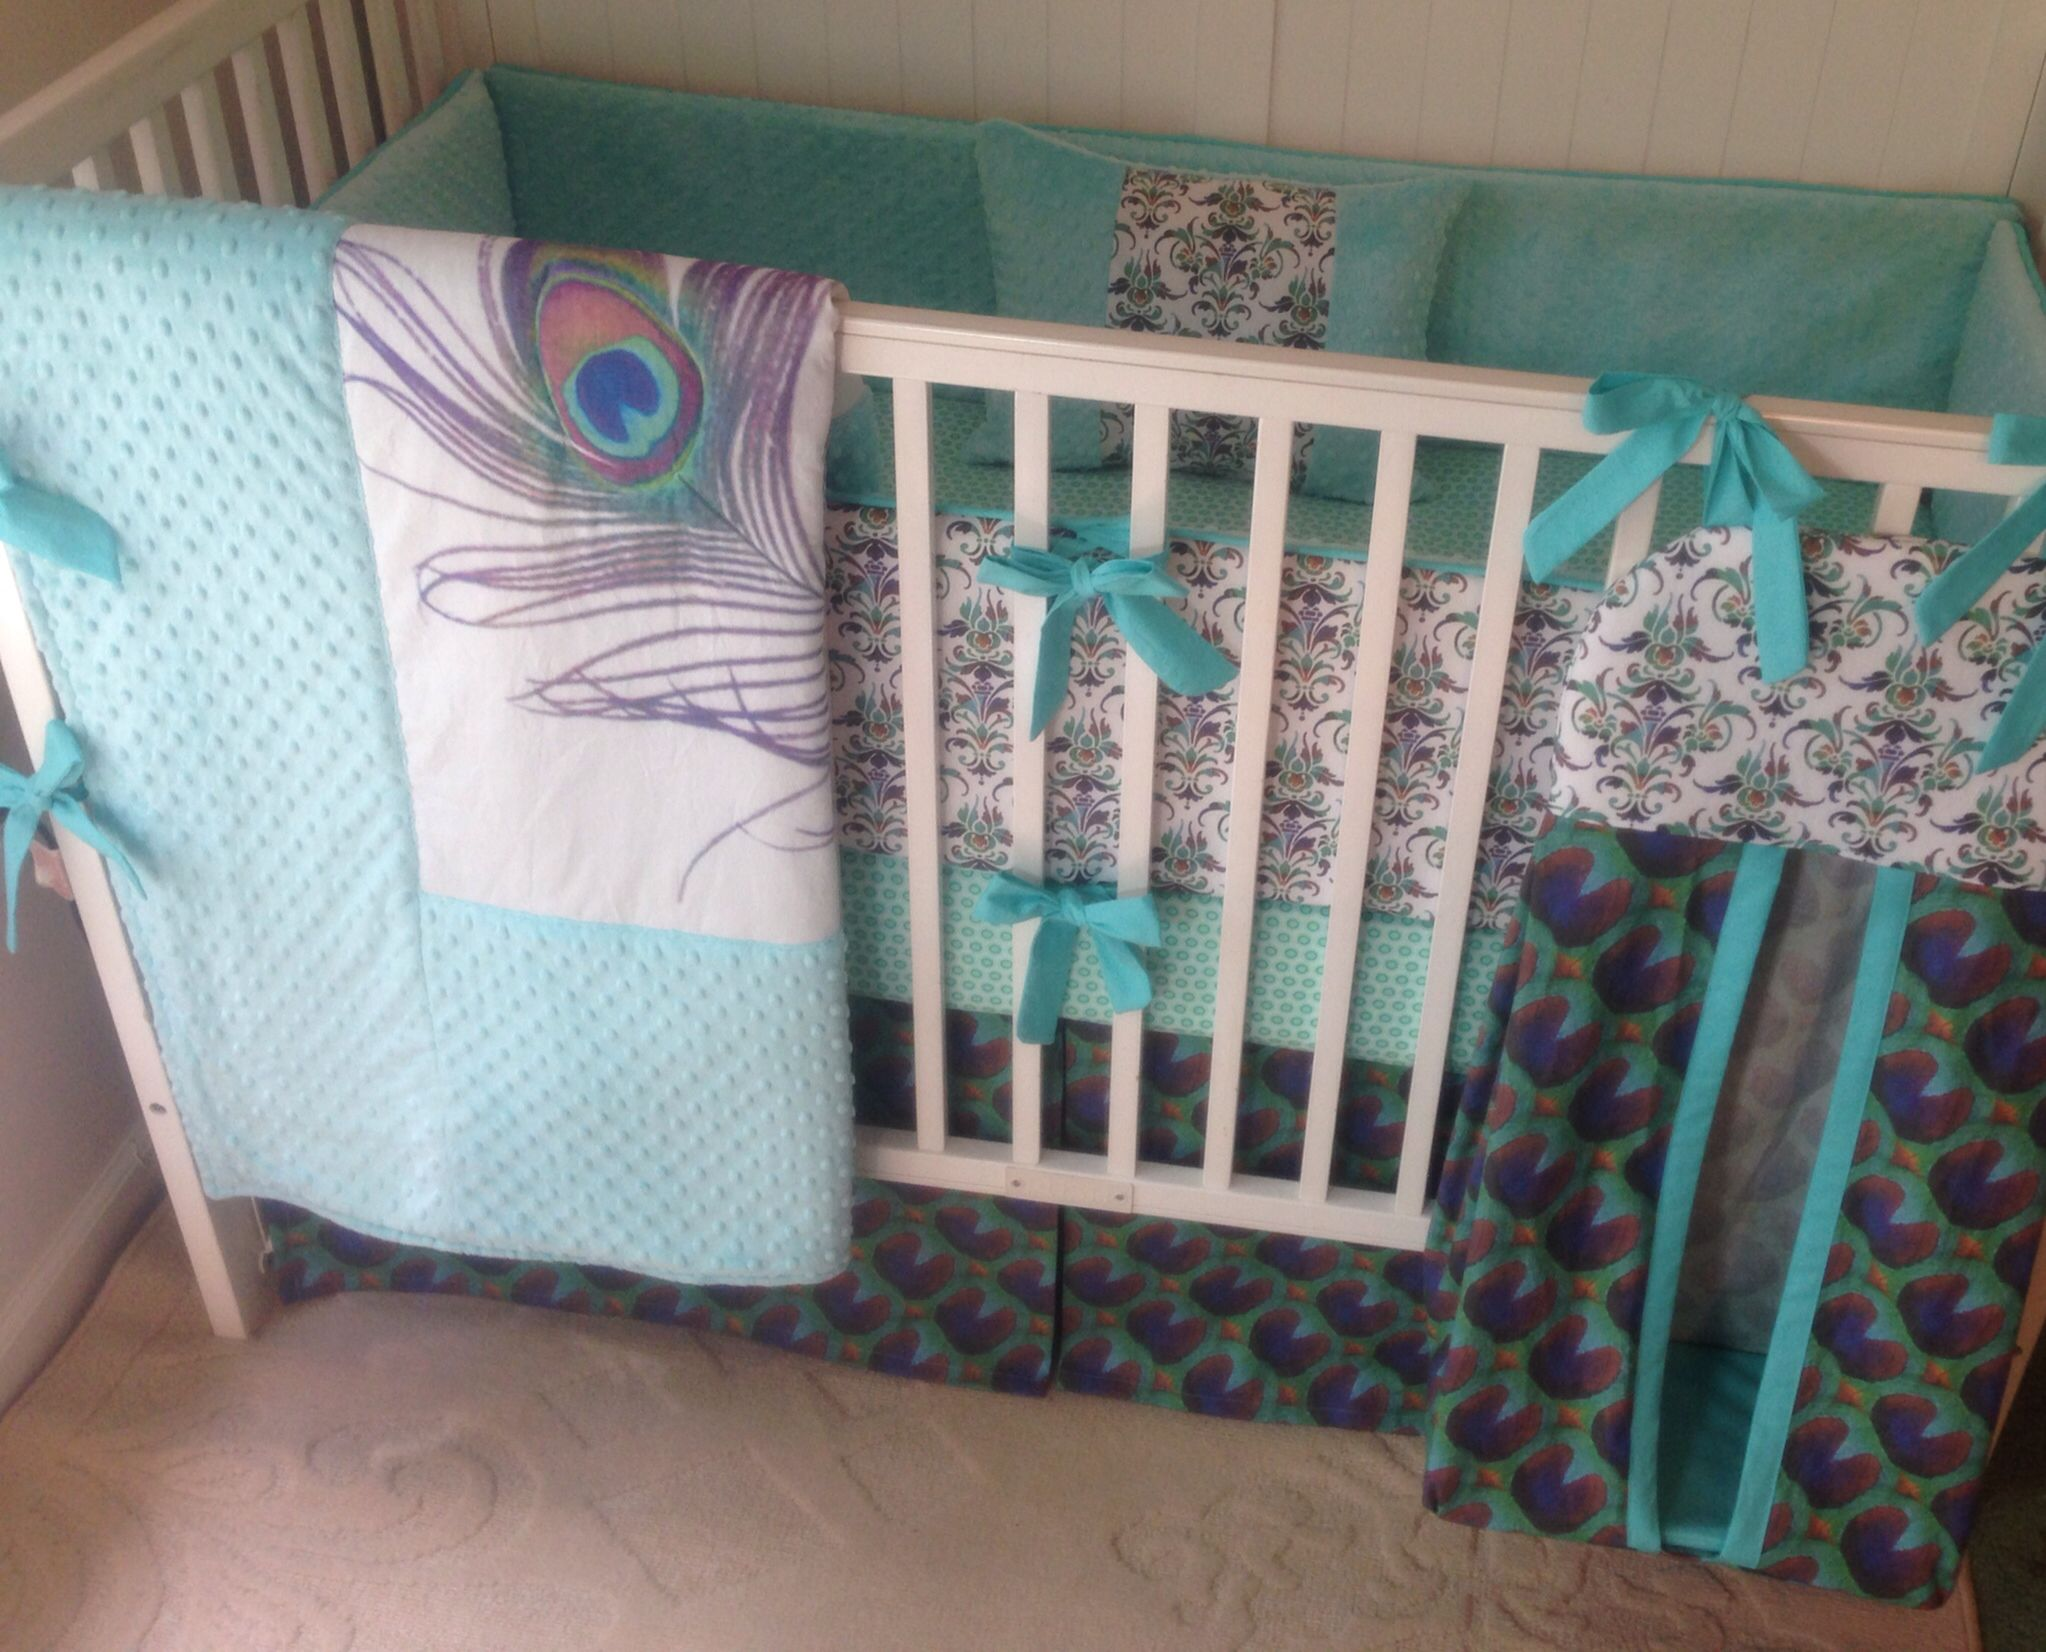 Crib bedding set gray white navy blue with by butterbeansboutique - Pretty As A Peacock Crib Bedding Set I Just Adore Peacocks And Their Vibrant Colors